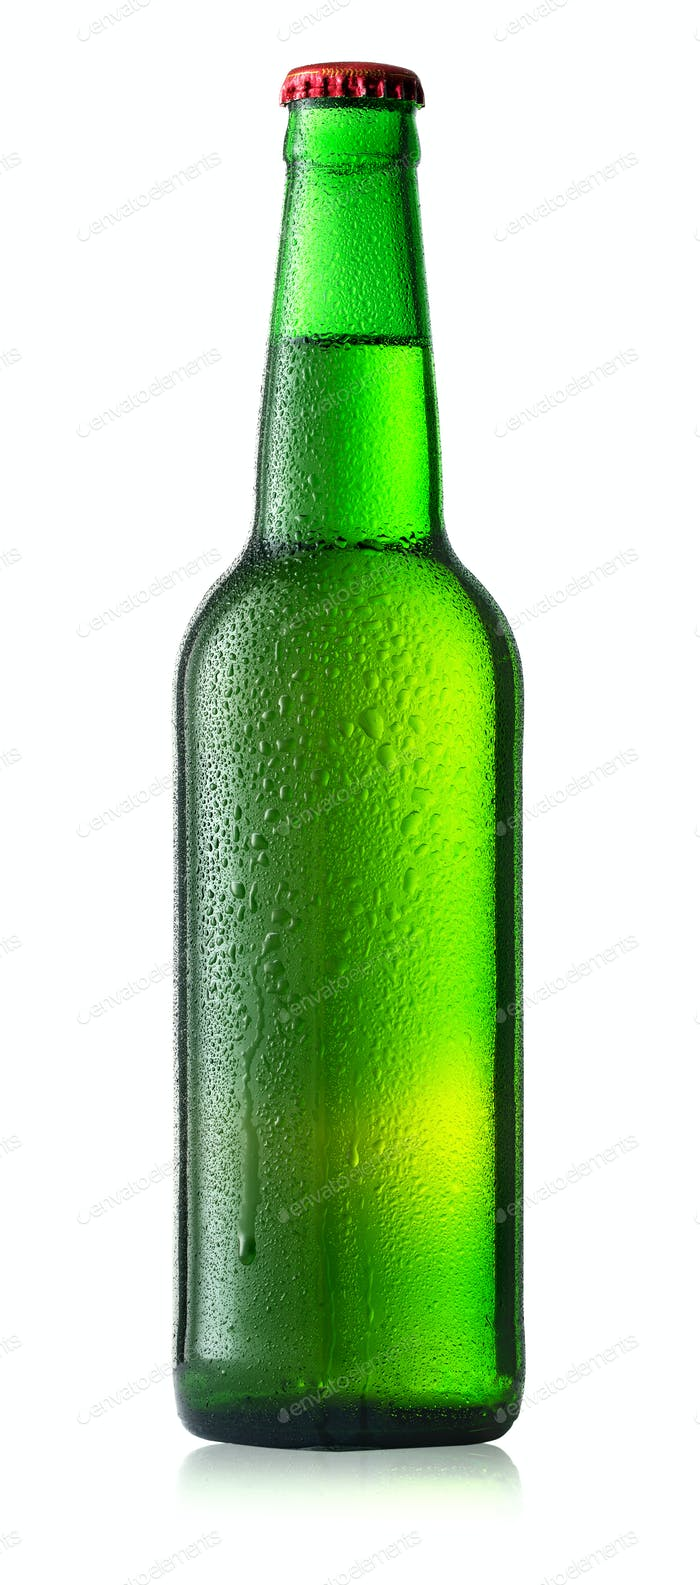 Green cold bottle of beer with drops